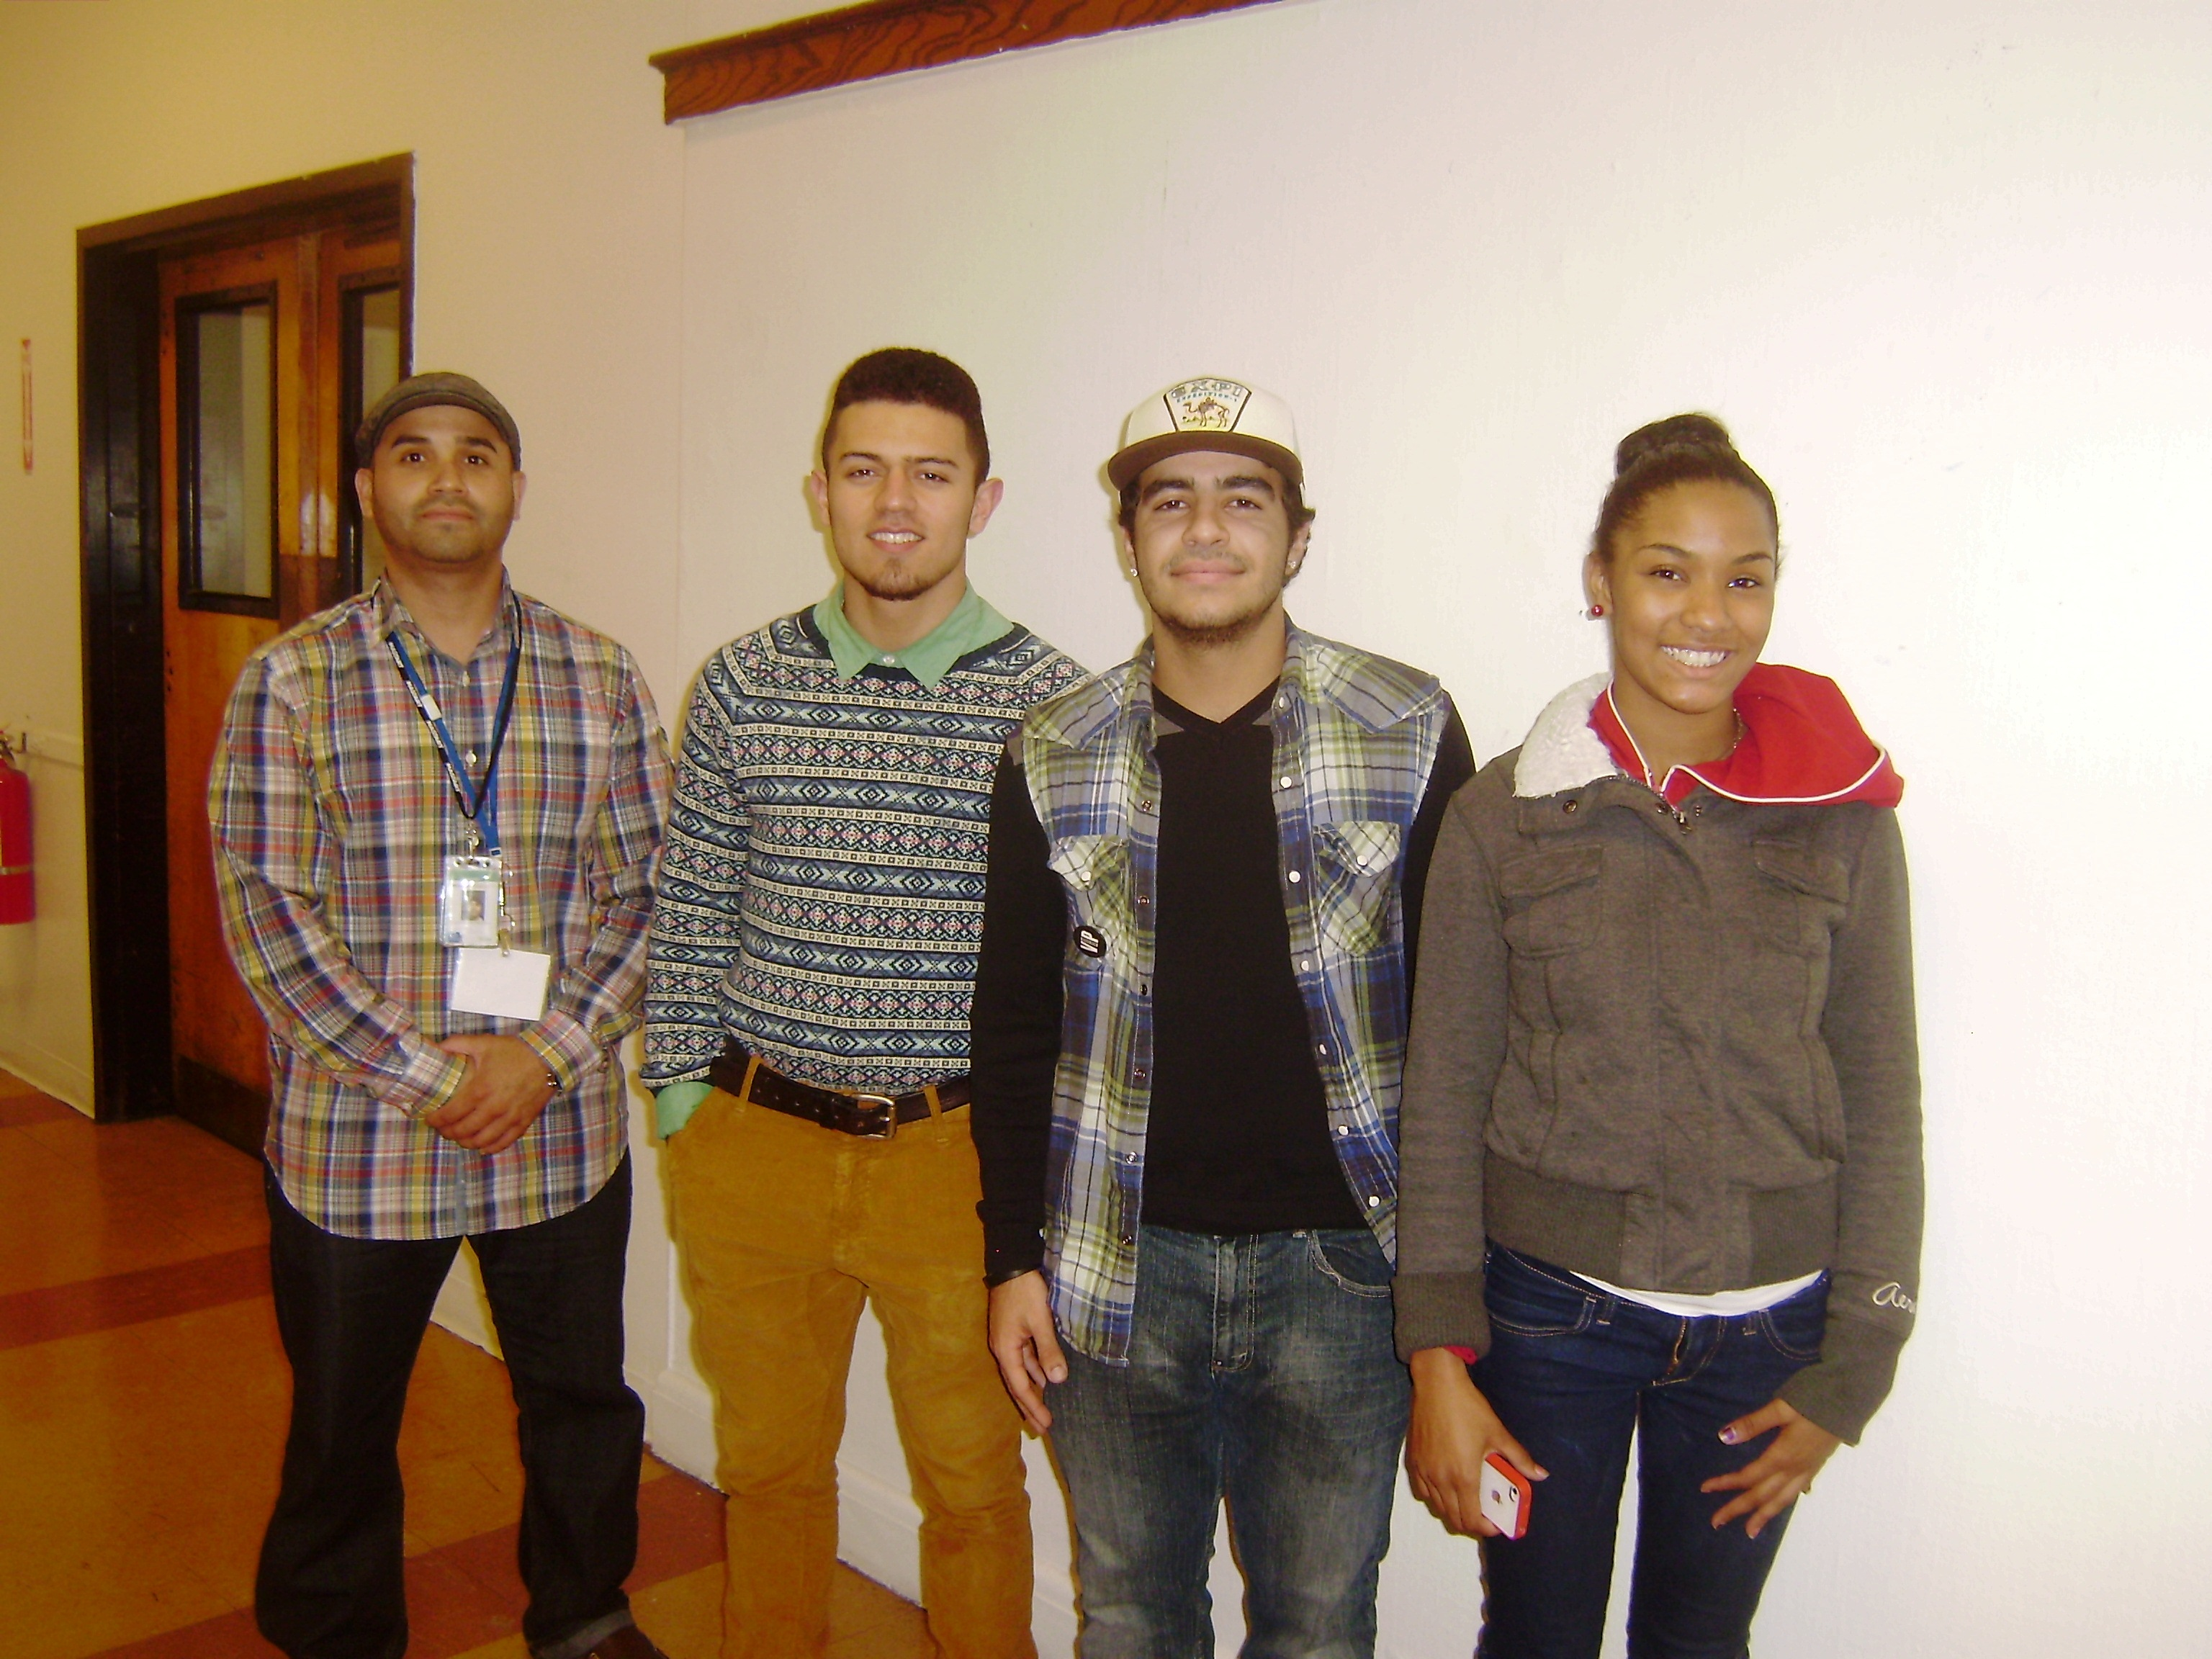 Image: Martin Figueroa, Jeison Peguero, David Landing-leal and Shanique Mitchell participate in a Sociedad Latinas community outreach event in January 2012. (Photo: Jenni Walen)